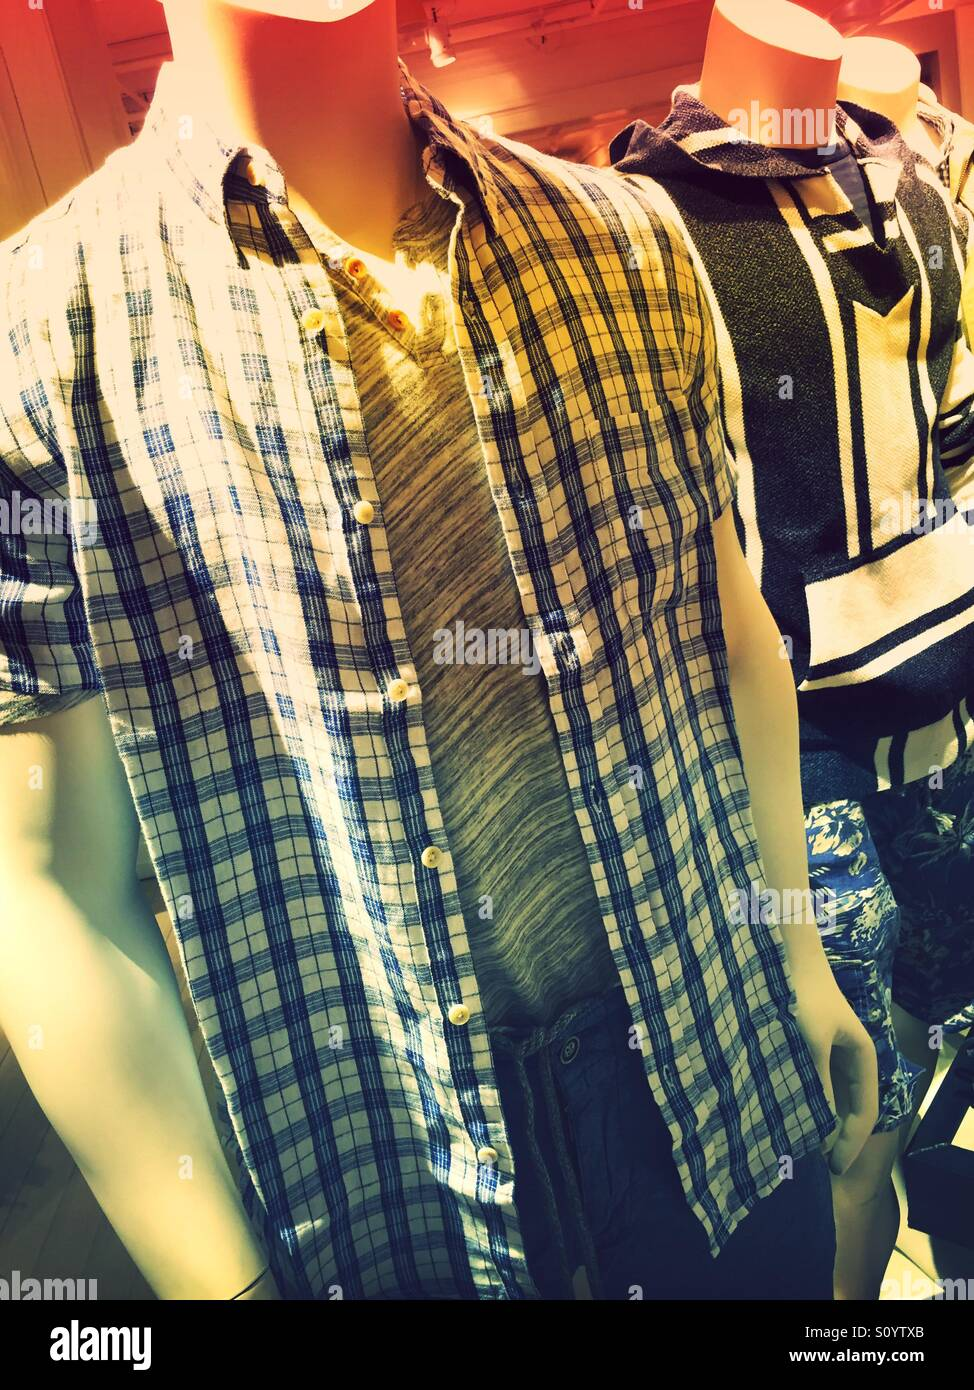 bd72f6b614e3 Mannequins Display casual men s clothing in department store ...